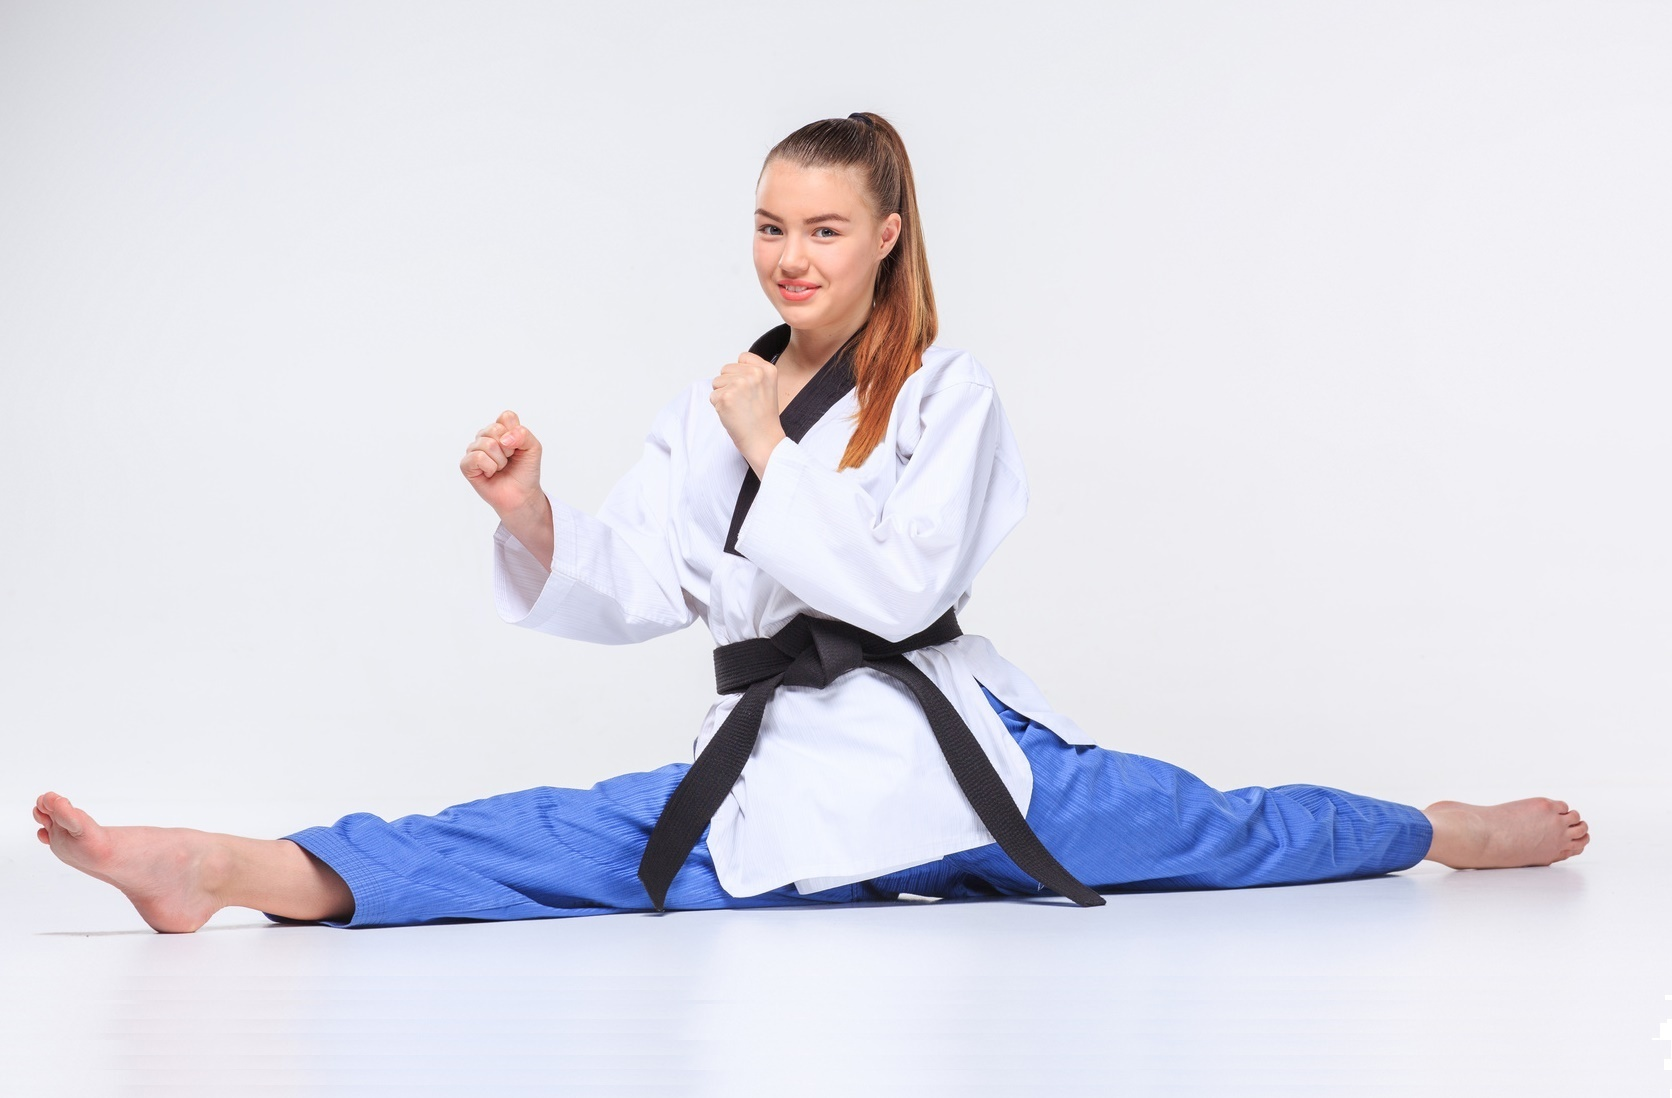 10 reasons why you should practice Taekwondo from now